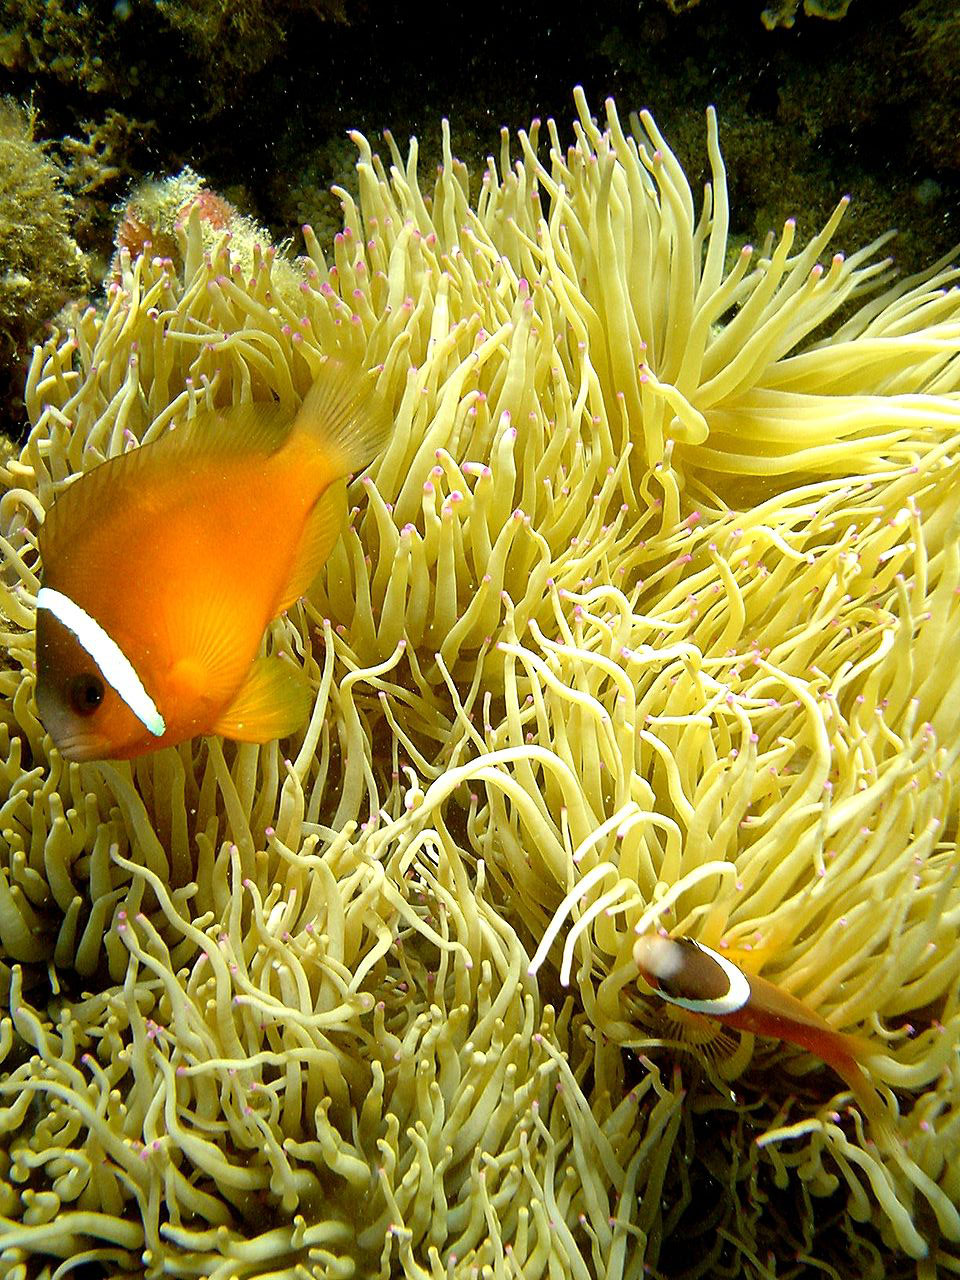 Amphiprion barberi in Fiji - photographed by Brocken Inaglory - Wikimedia / Creative Commons